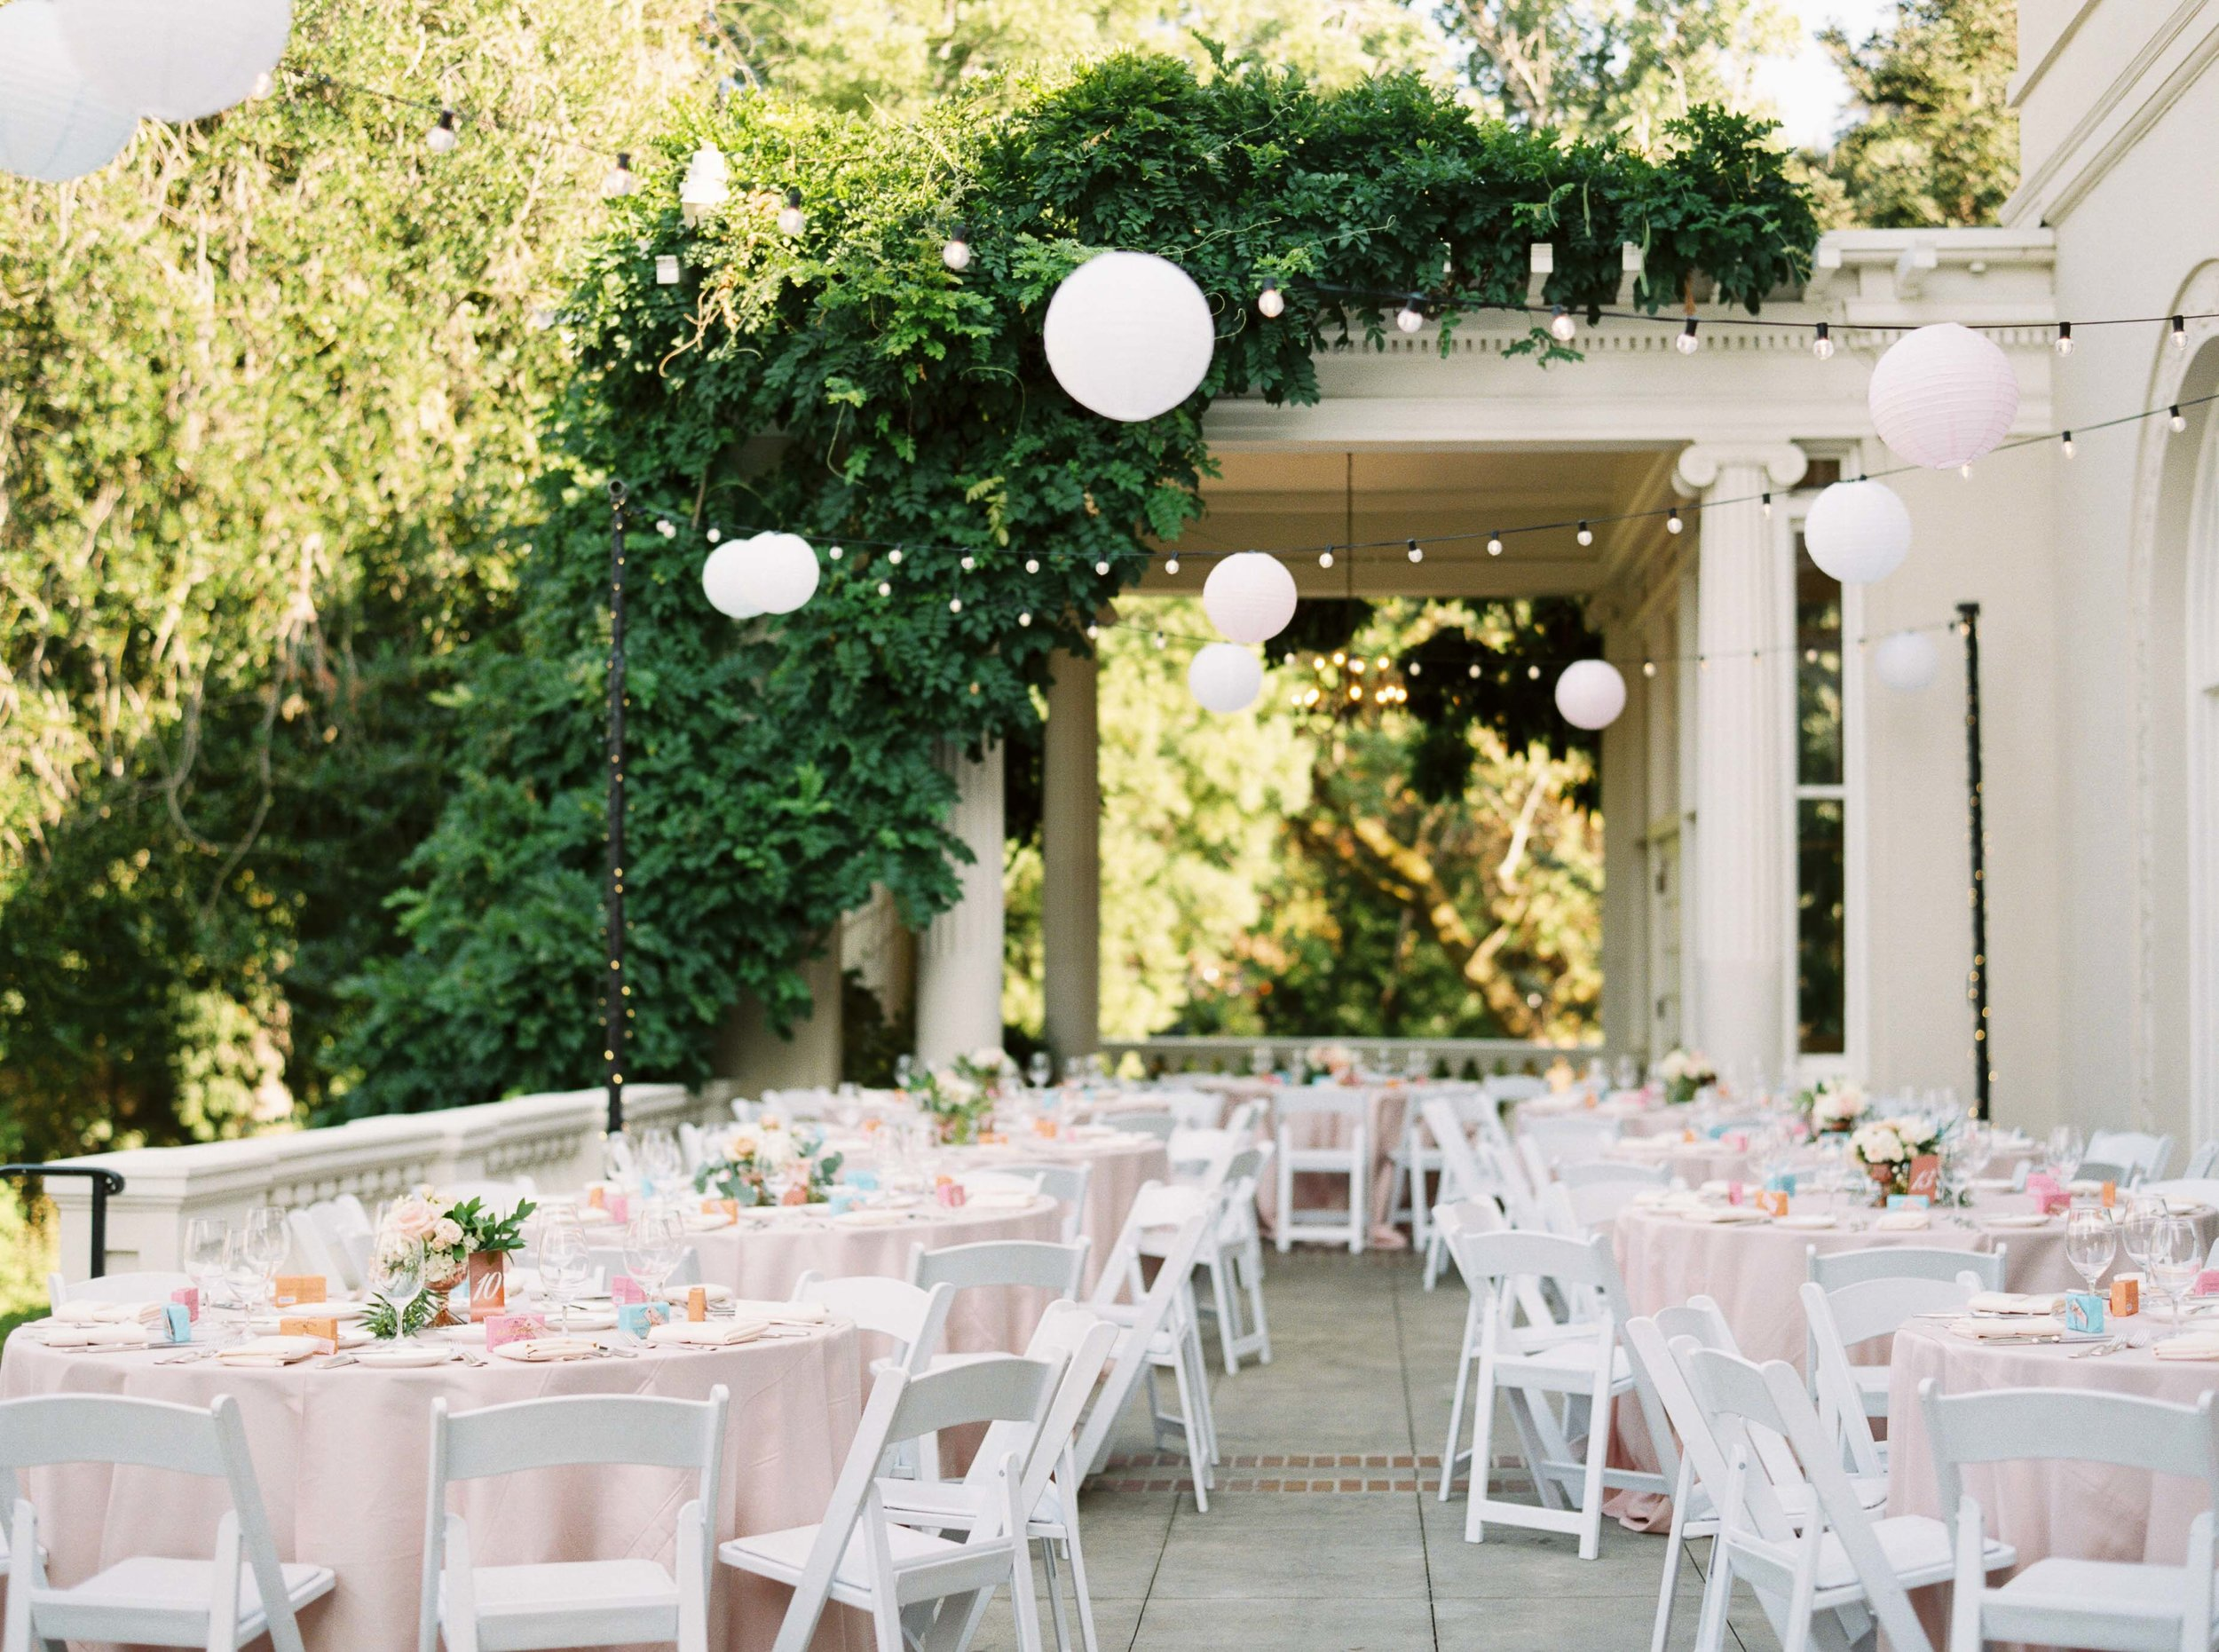 Villa_Montalvo_Wedding_Photographer_Videographer_San_Francisco142.jpg